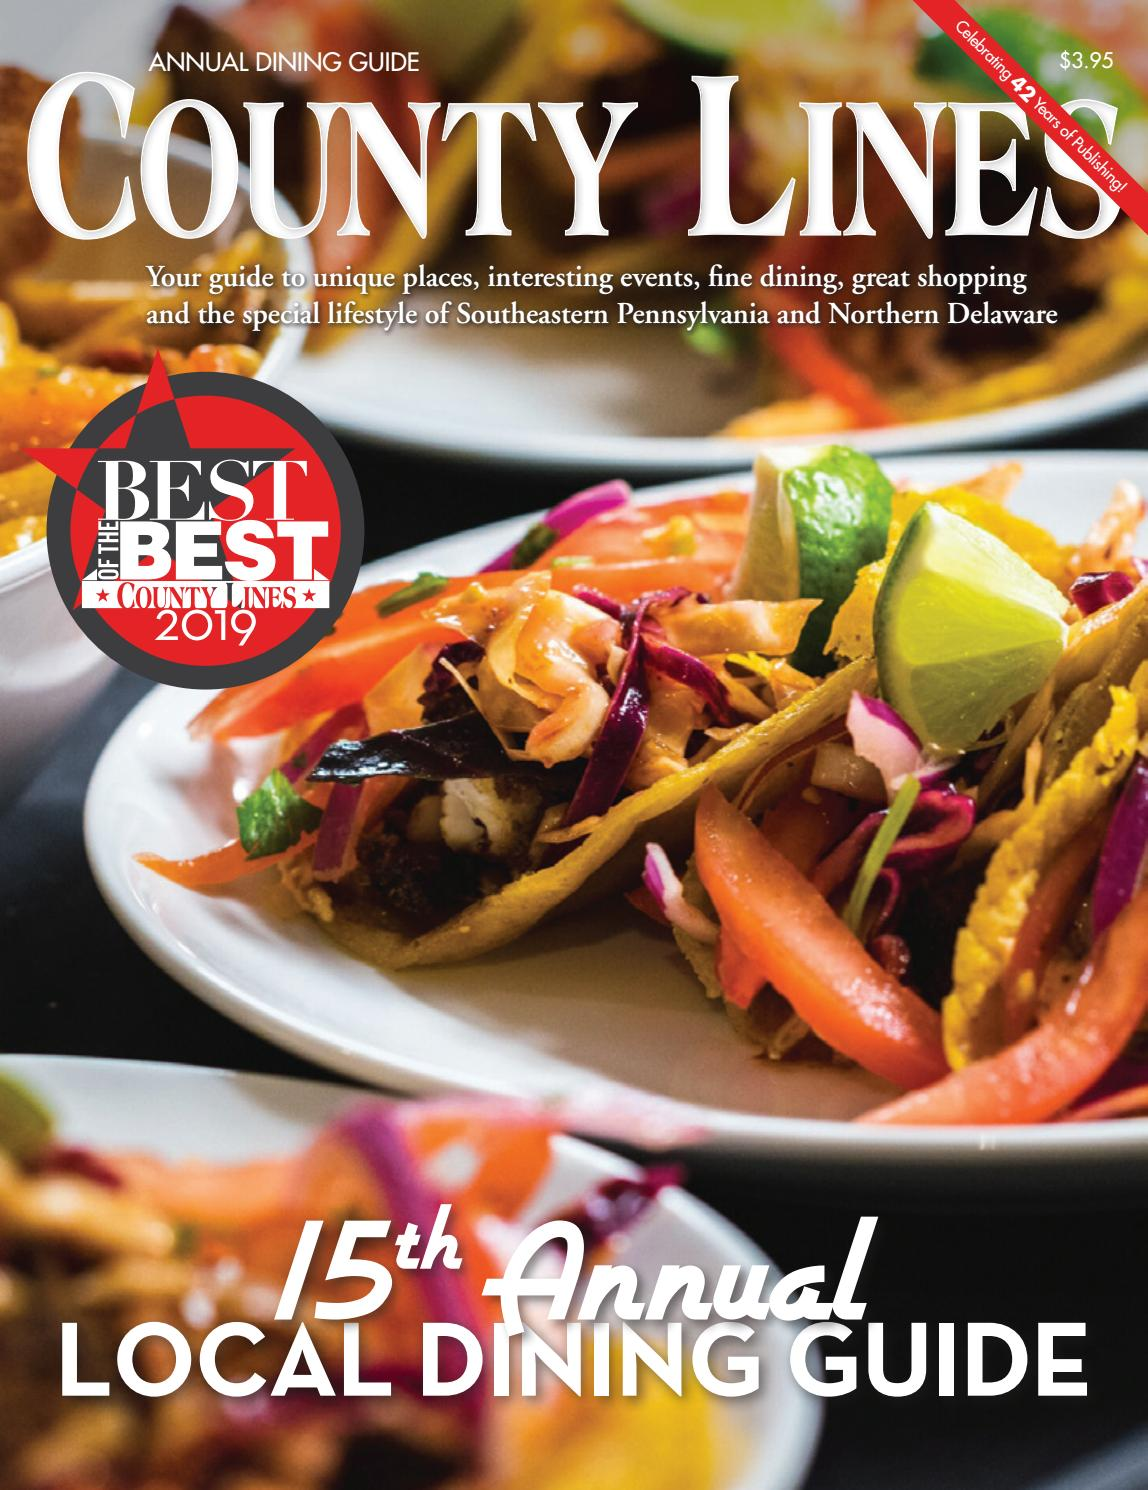 Cuisine Royale Brightness County Lines Magazine Jan 19 By County Lines Magazine Issuu